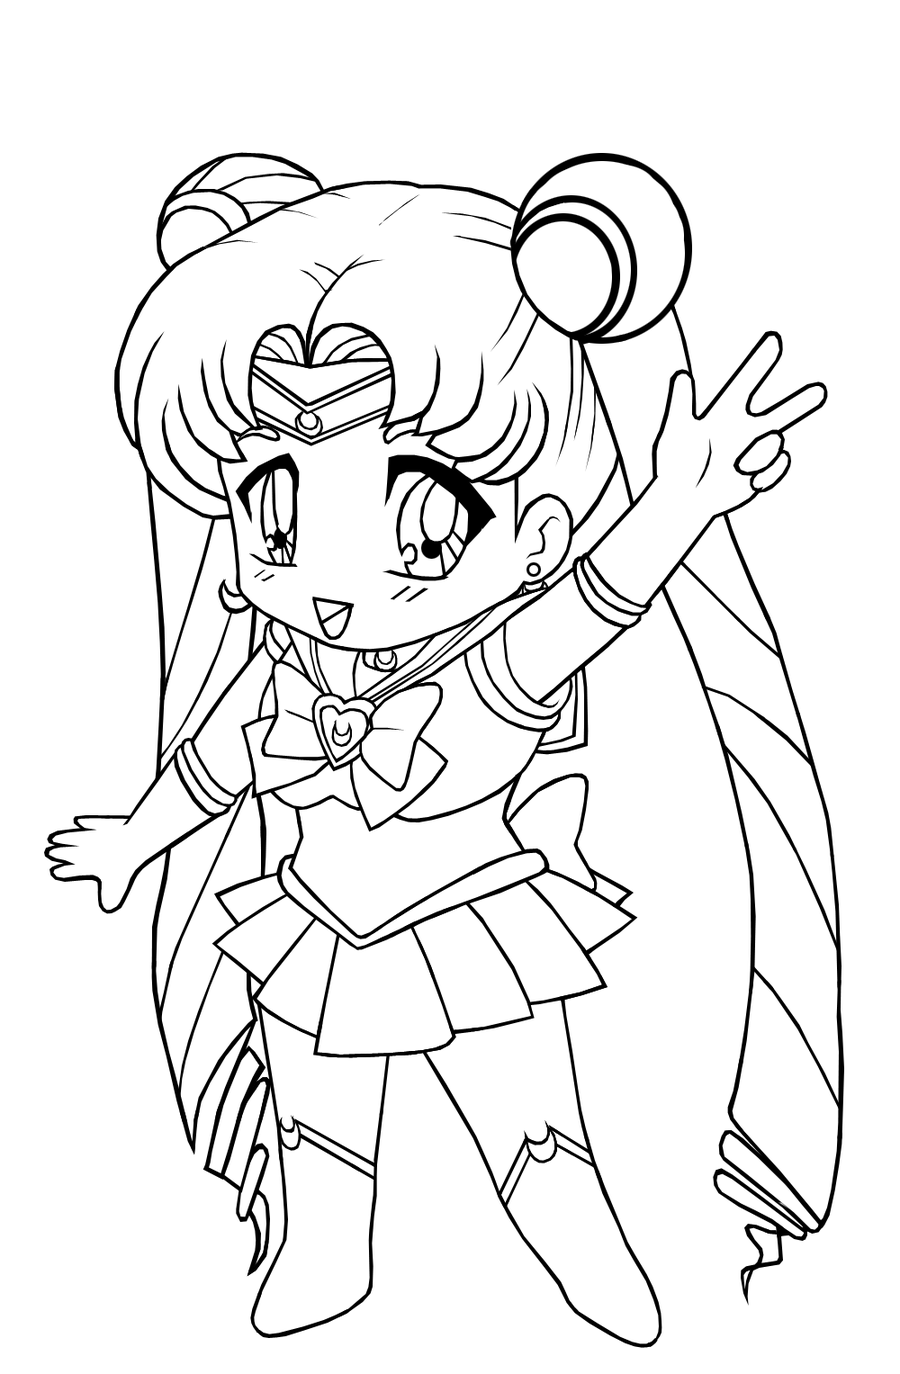 Free printable chibi coloring pages for kids for Anime character coloring pages